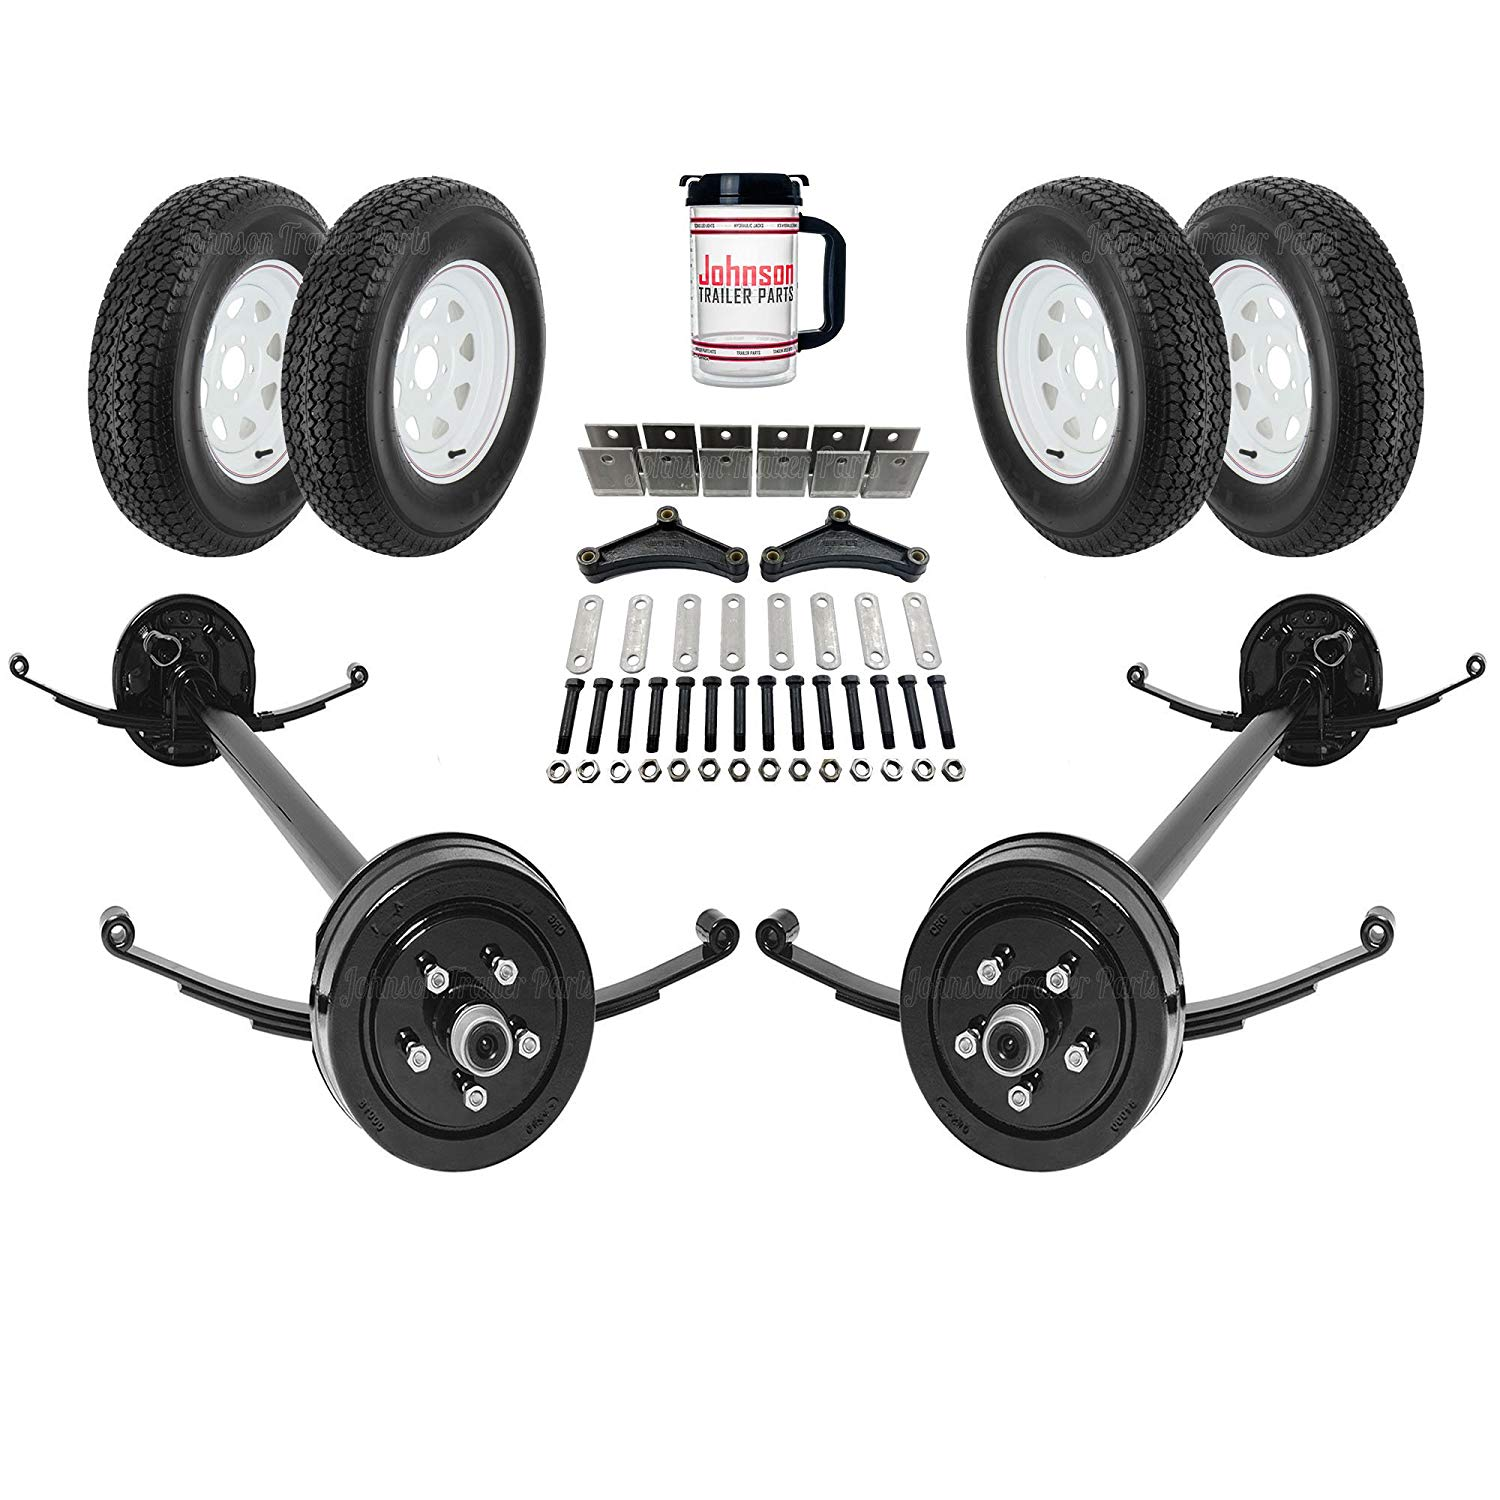 Cheap Trailer Axle Brakes, find Trailer Axle Brakes deals on line at